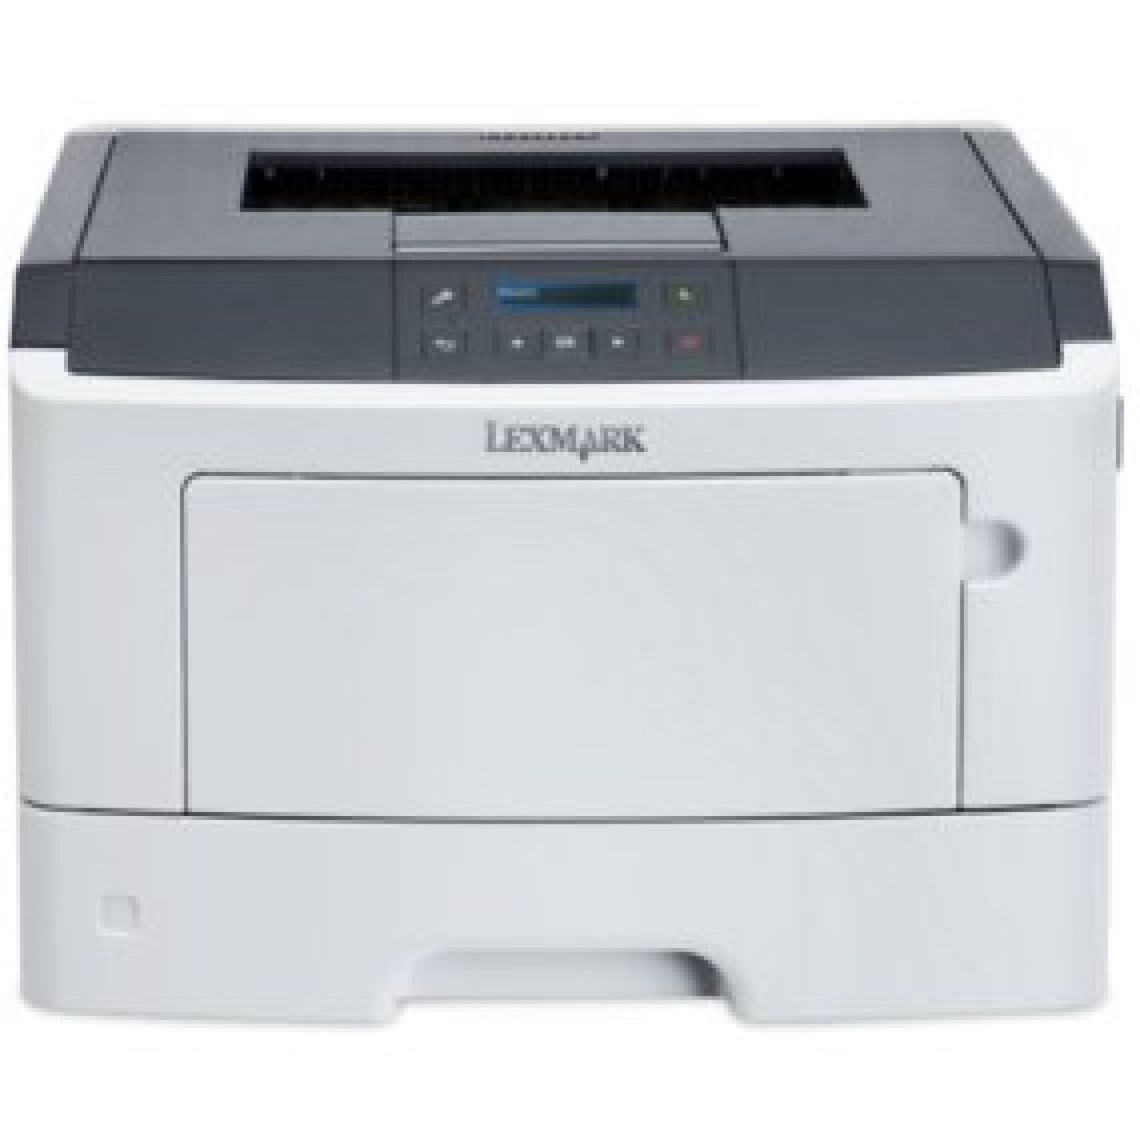 Amazon.com: Lexmark MS312dn Compact Laser Printer, Monochrome, Networking, Duplex Printing: Electronics